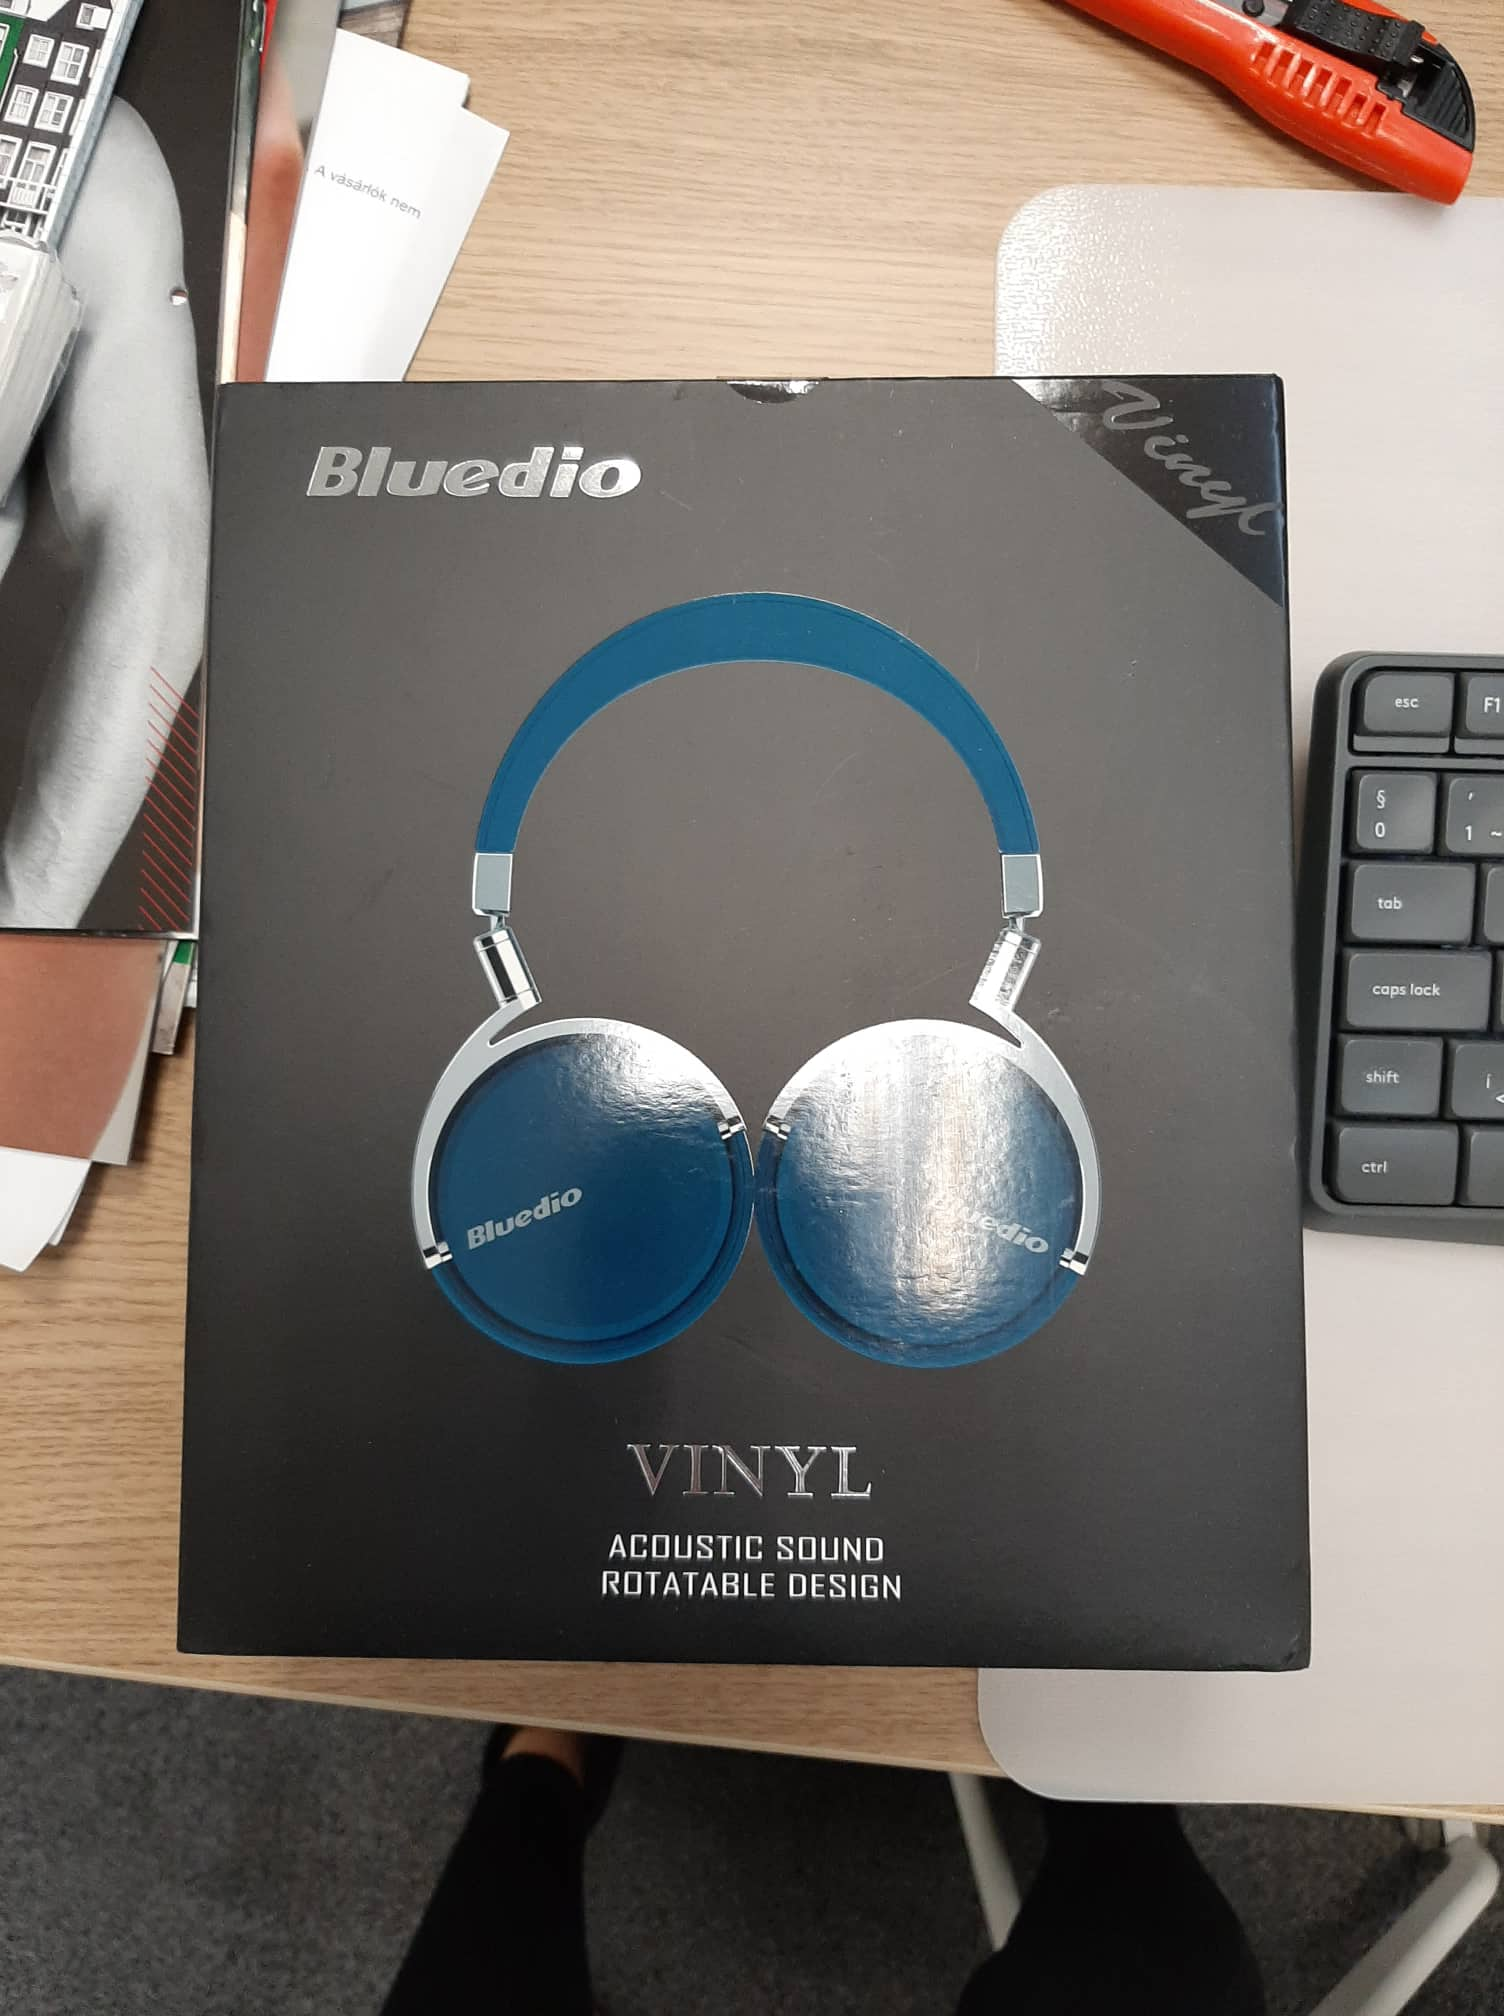 Original Bluedio Vinyl Premium Bluetooth Headphones Super Bass Wireless Headset With Microphone For Music and phone xiaomi-in Bluetooth Earphones & Headphones from Consumer Electronics on AliExpress